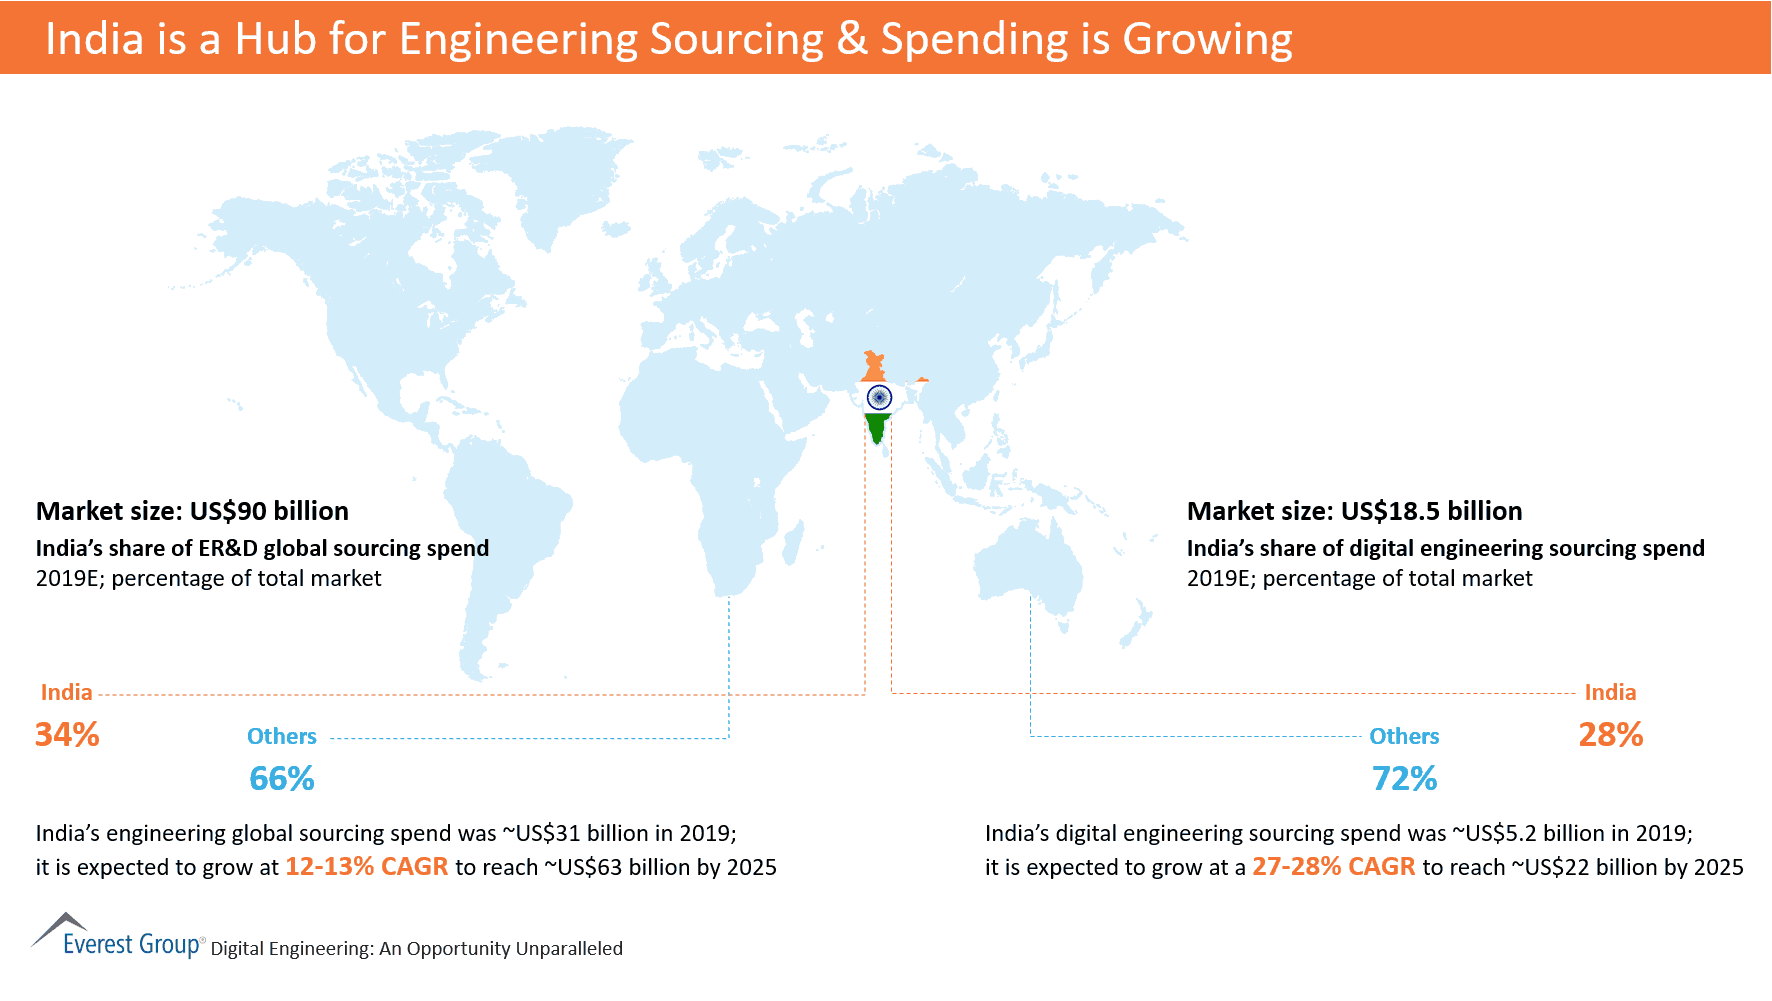 India is a Hub for Engineering Sourcing & Spending is Growing